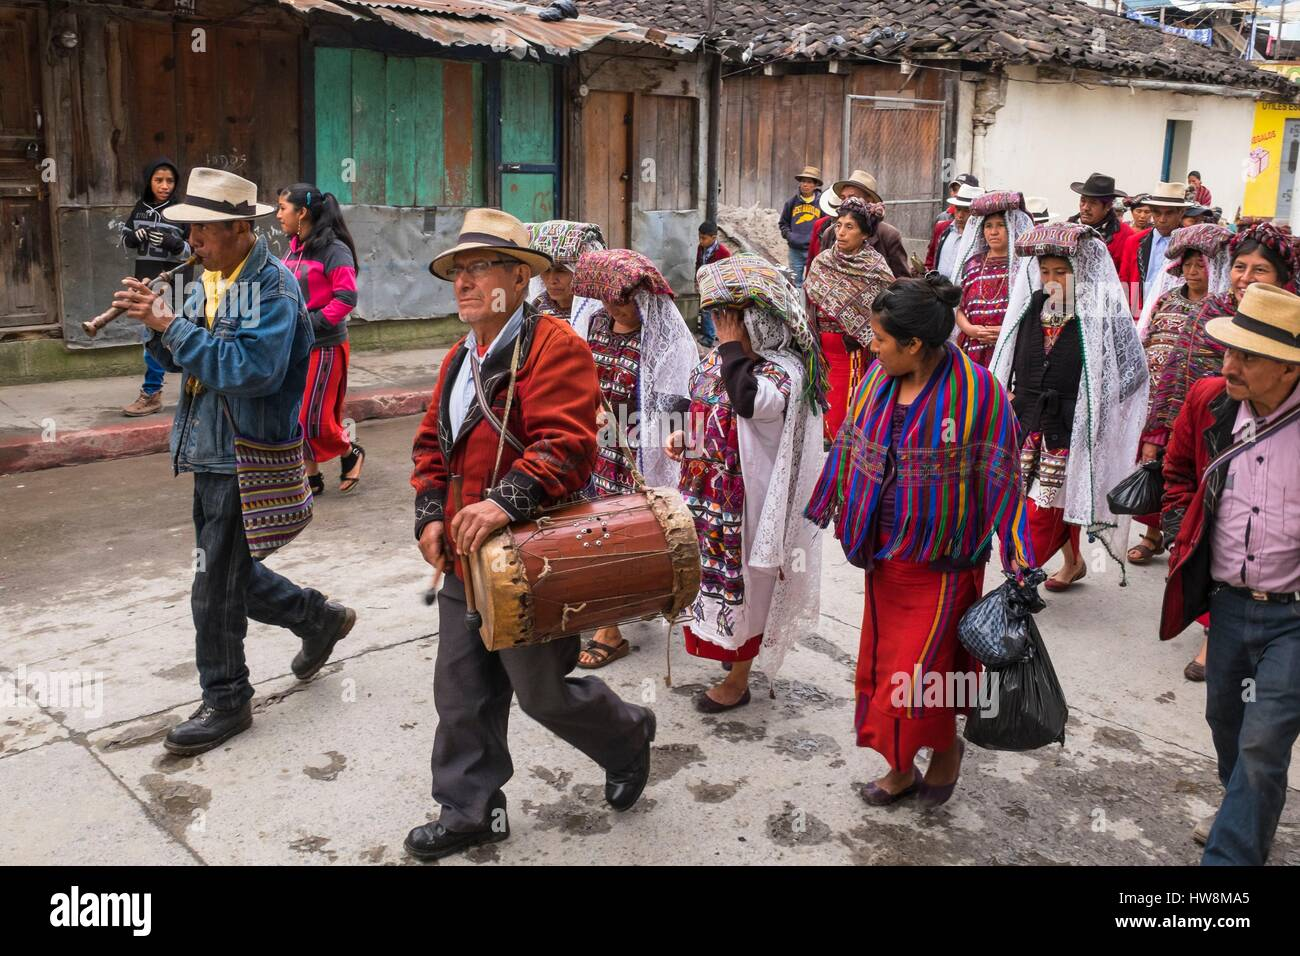 Guatemala, Quiche department, Nebaj, Ixil Mayan village, nestled in the Sierra de los Cuchumatanes - Stock Image